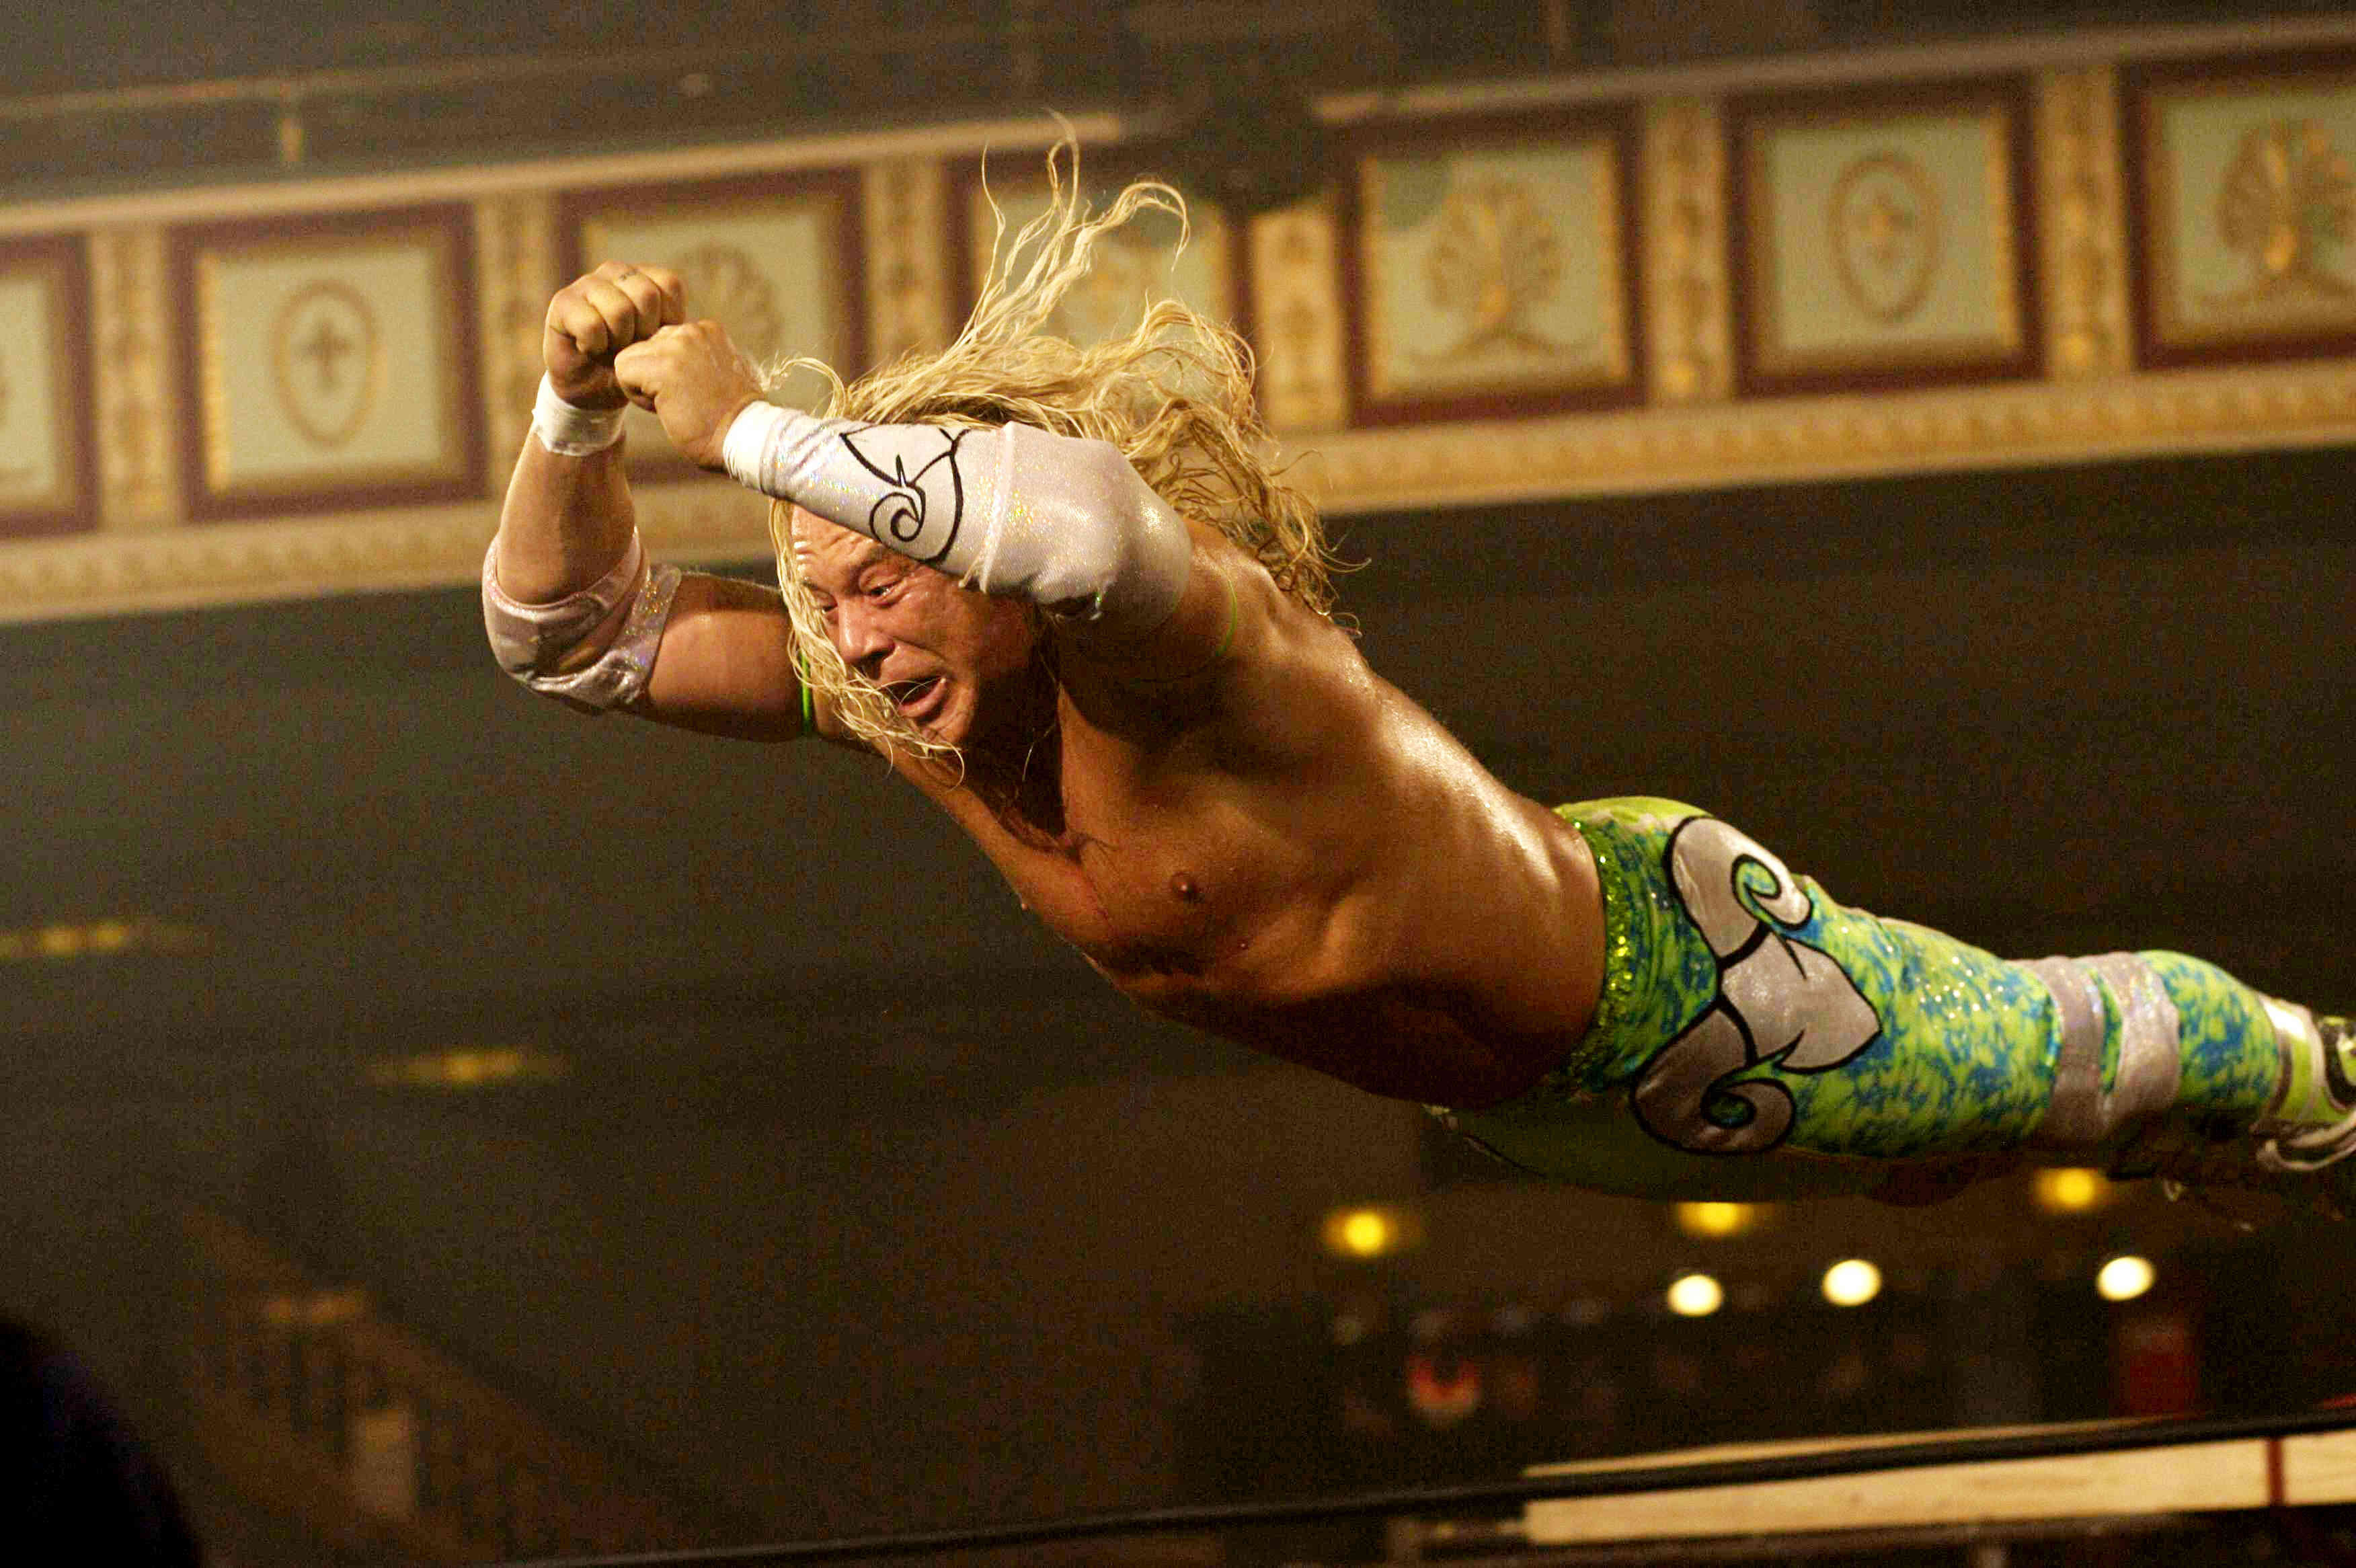 Risultati immagini per the wrestler movie